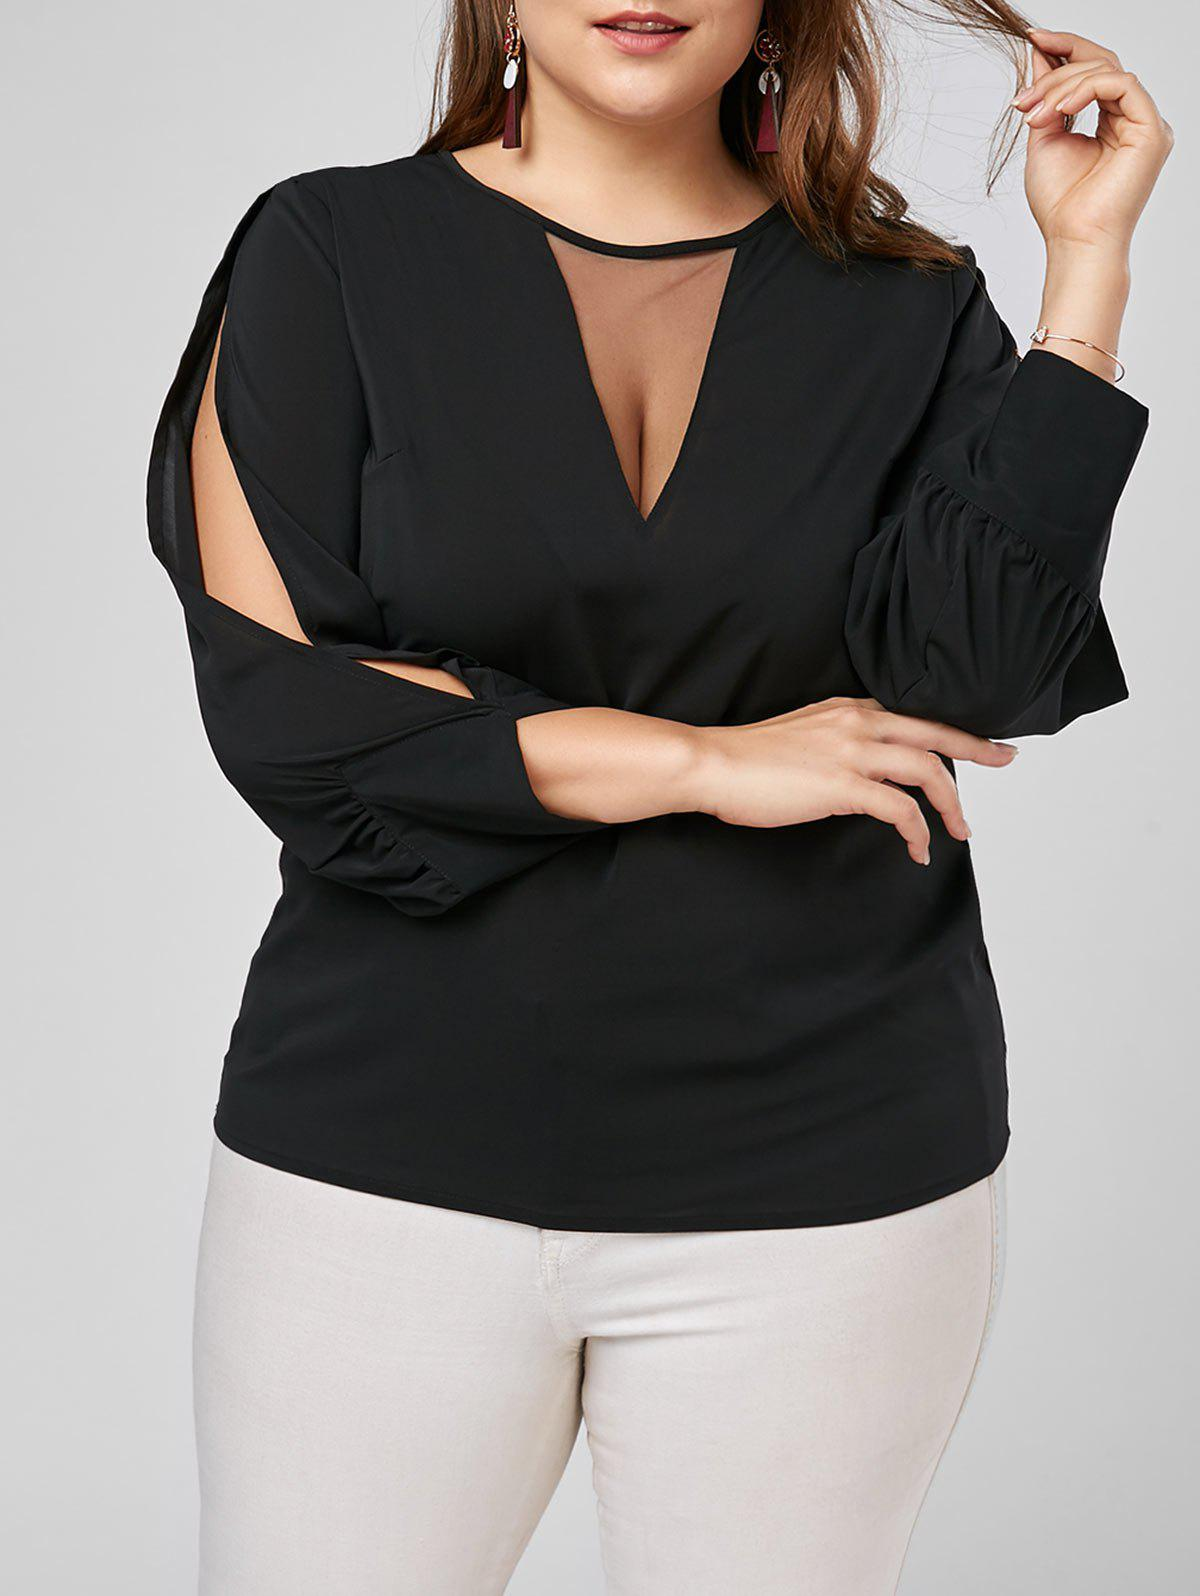 Split Long Sleeve Plus Size Mesh Trim TopWOMEN<br><br>Size: 4XL; Color: BLACK; Material: Polyester; Shirt Length: Regular; Sleeve Length: Full; Collar: Round Neck; Style: Fashion; Season: Spring,Summer; Pattern Type: Solid; Weight: 0.2200kg; Package Contents: 1 x Top;